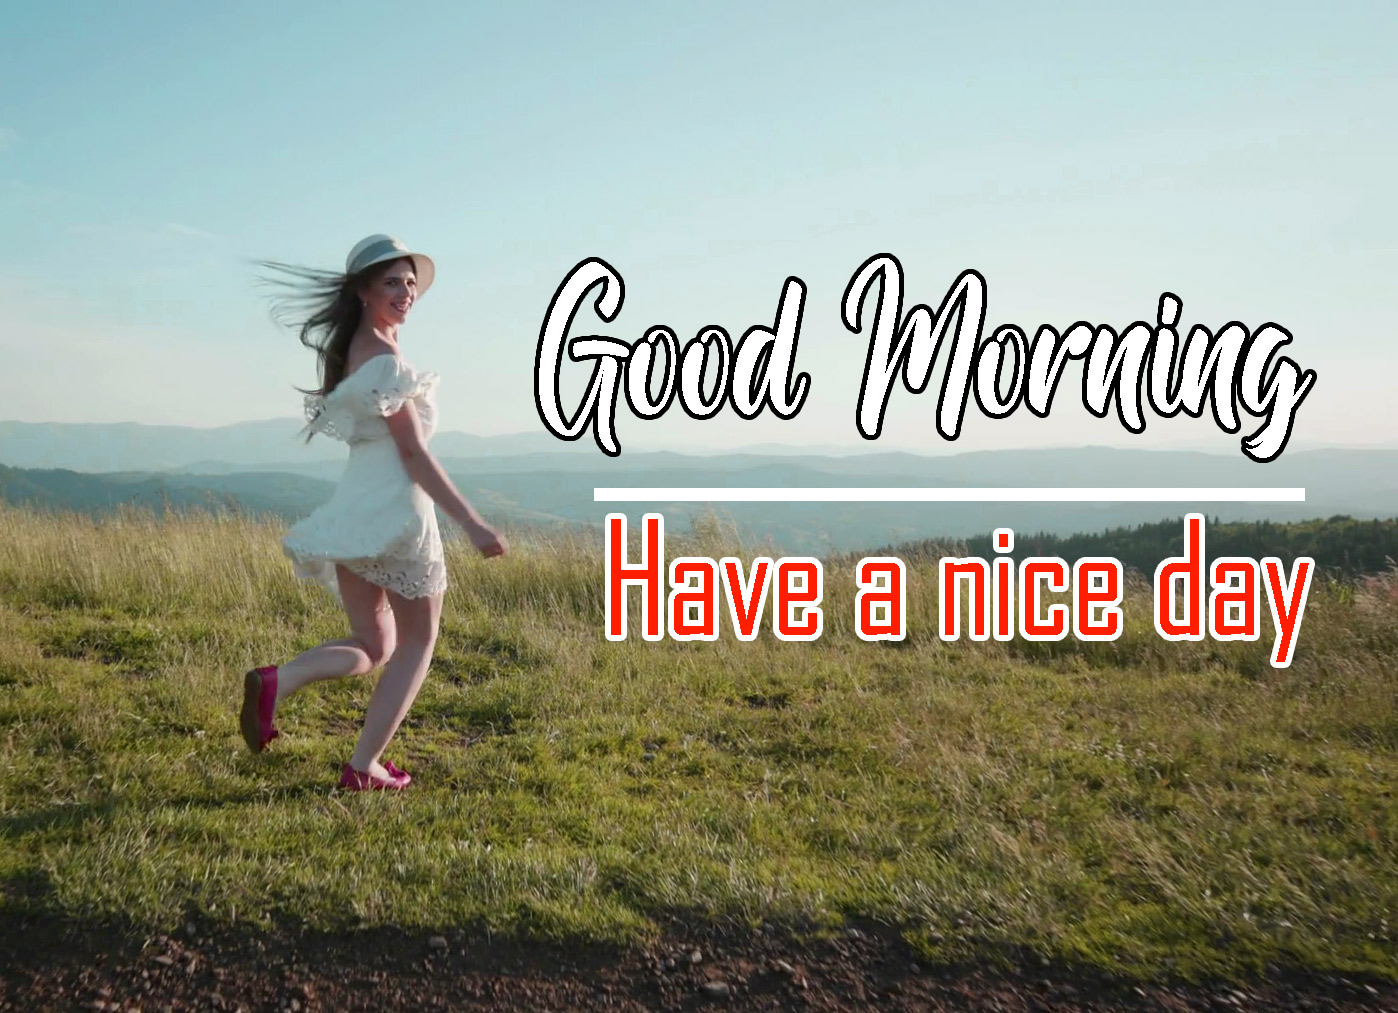 Joyful good morning Pictures Free Download